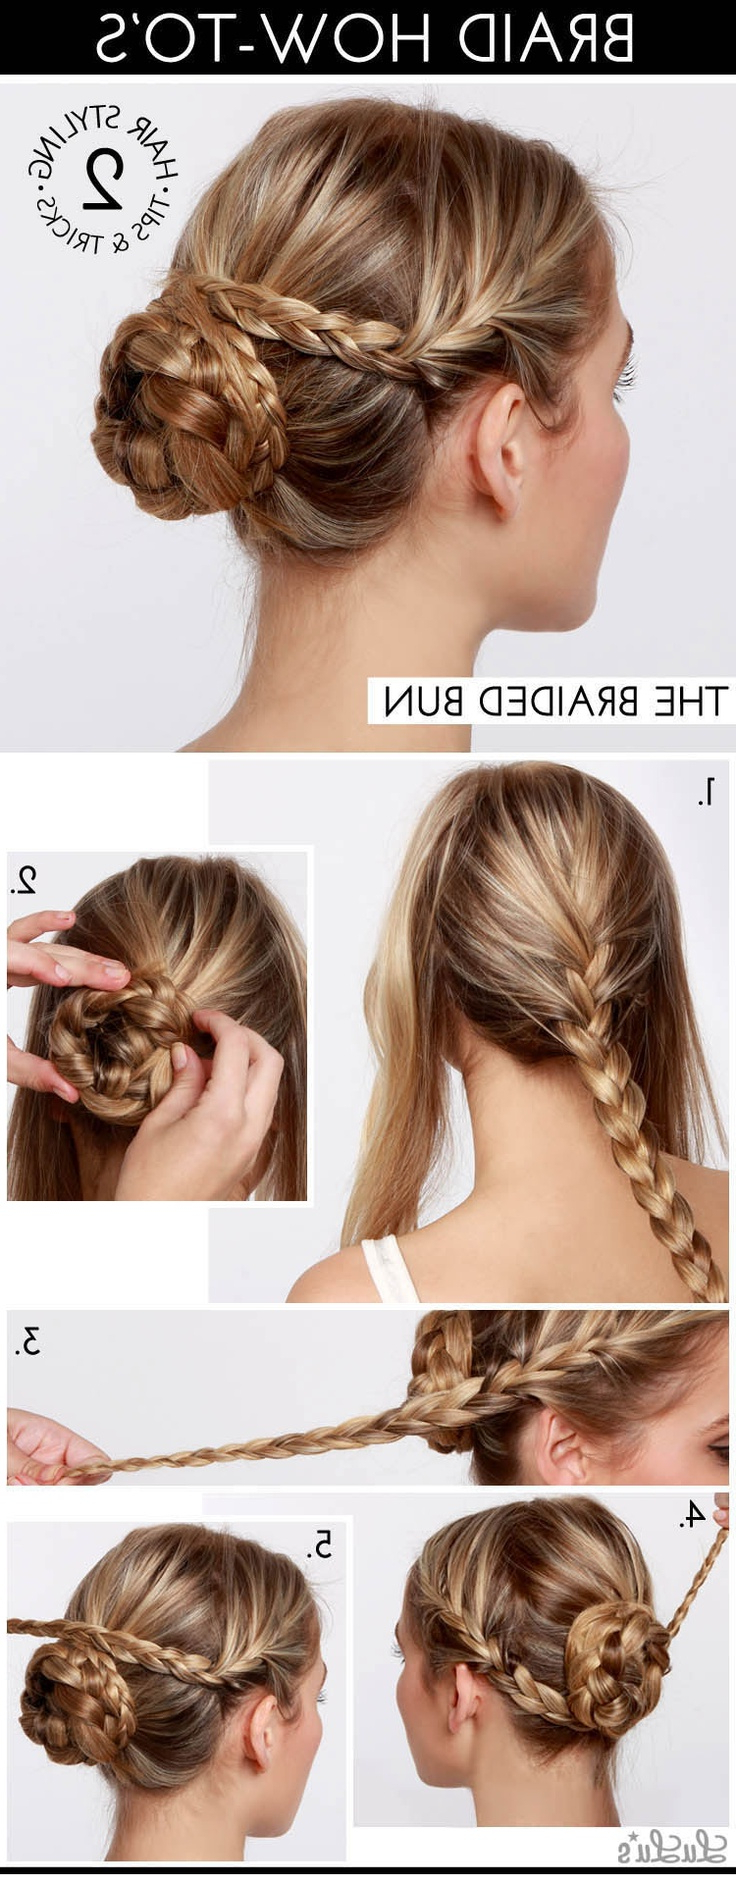 30+ Cute And Easy Braid Tutorials That Are Perfect For Any Throughout Preferred Triple Under Braid Hairstyles With A Bun (View 15 of 20)